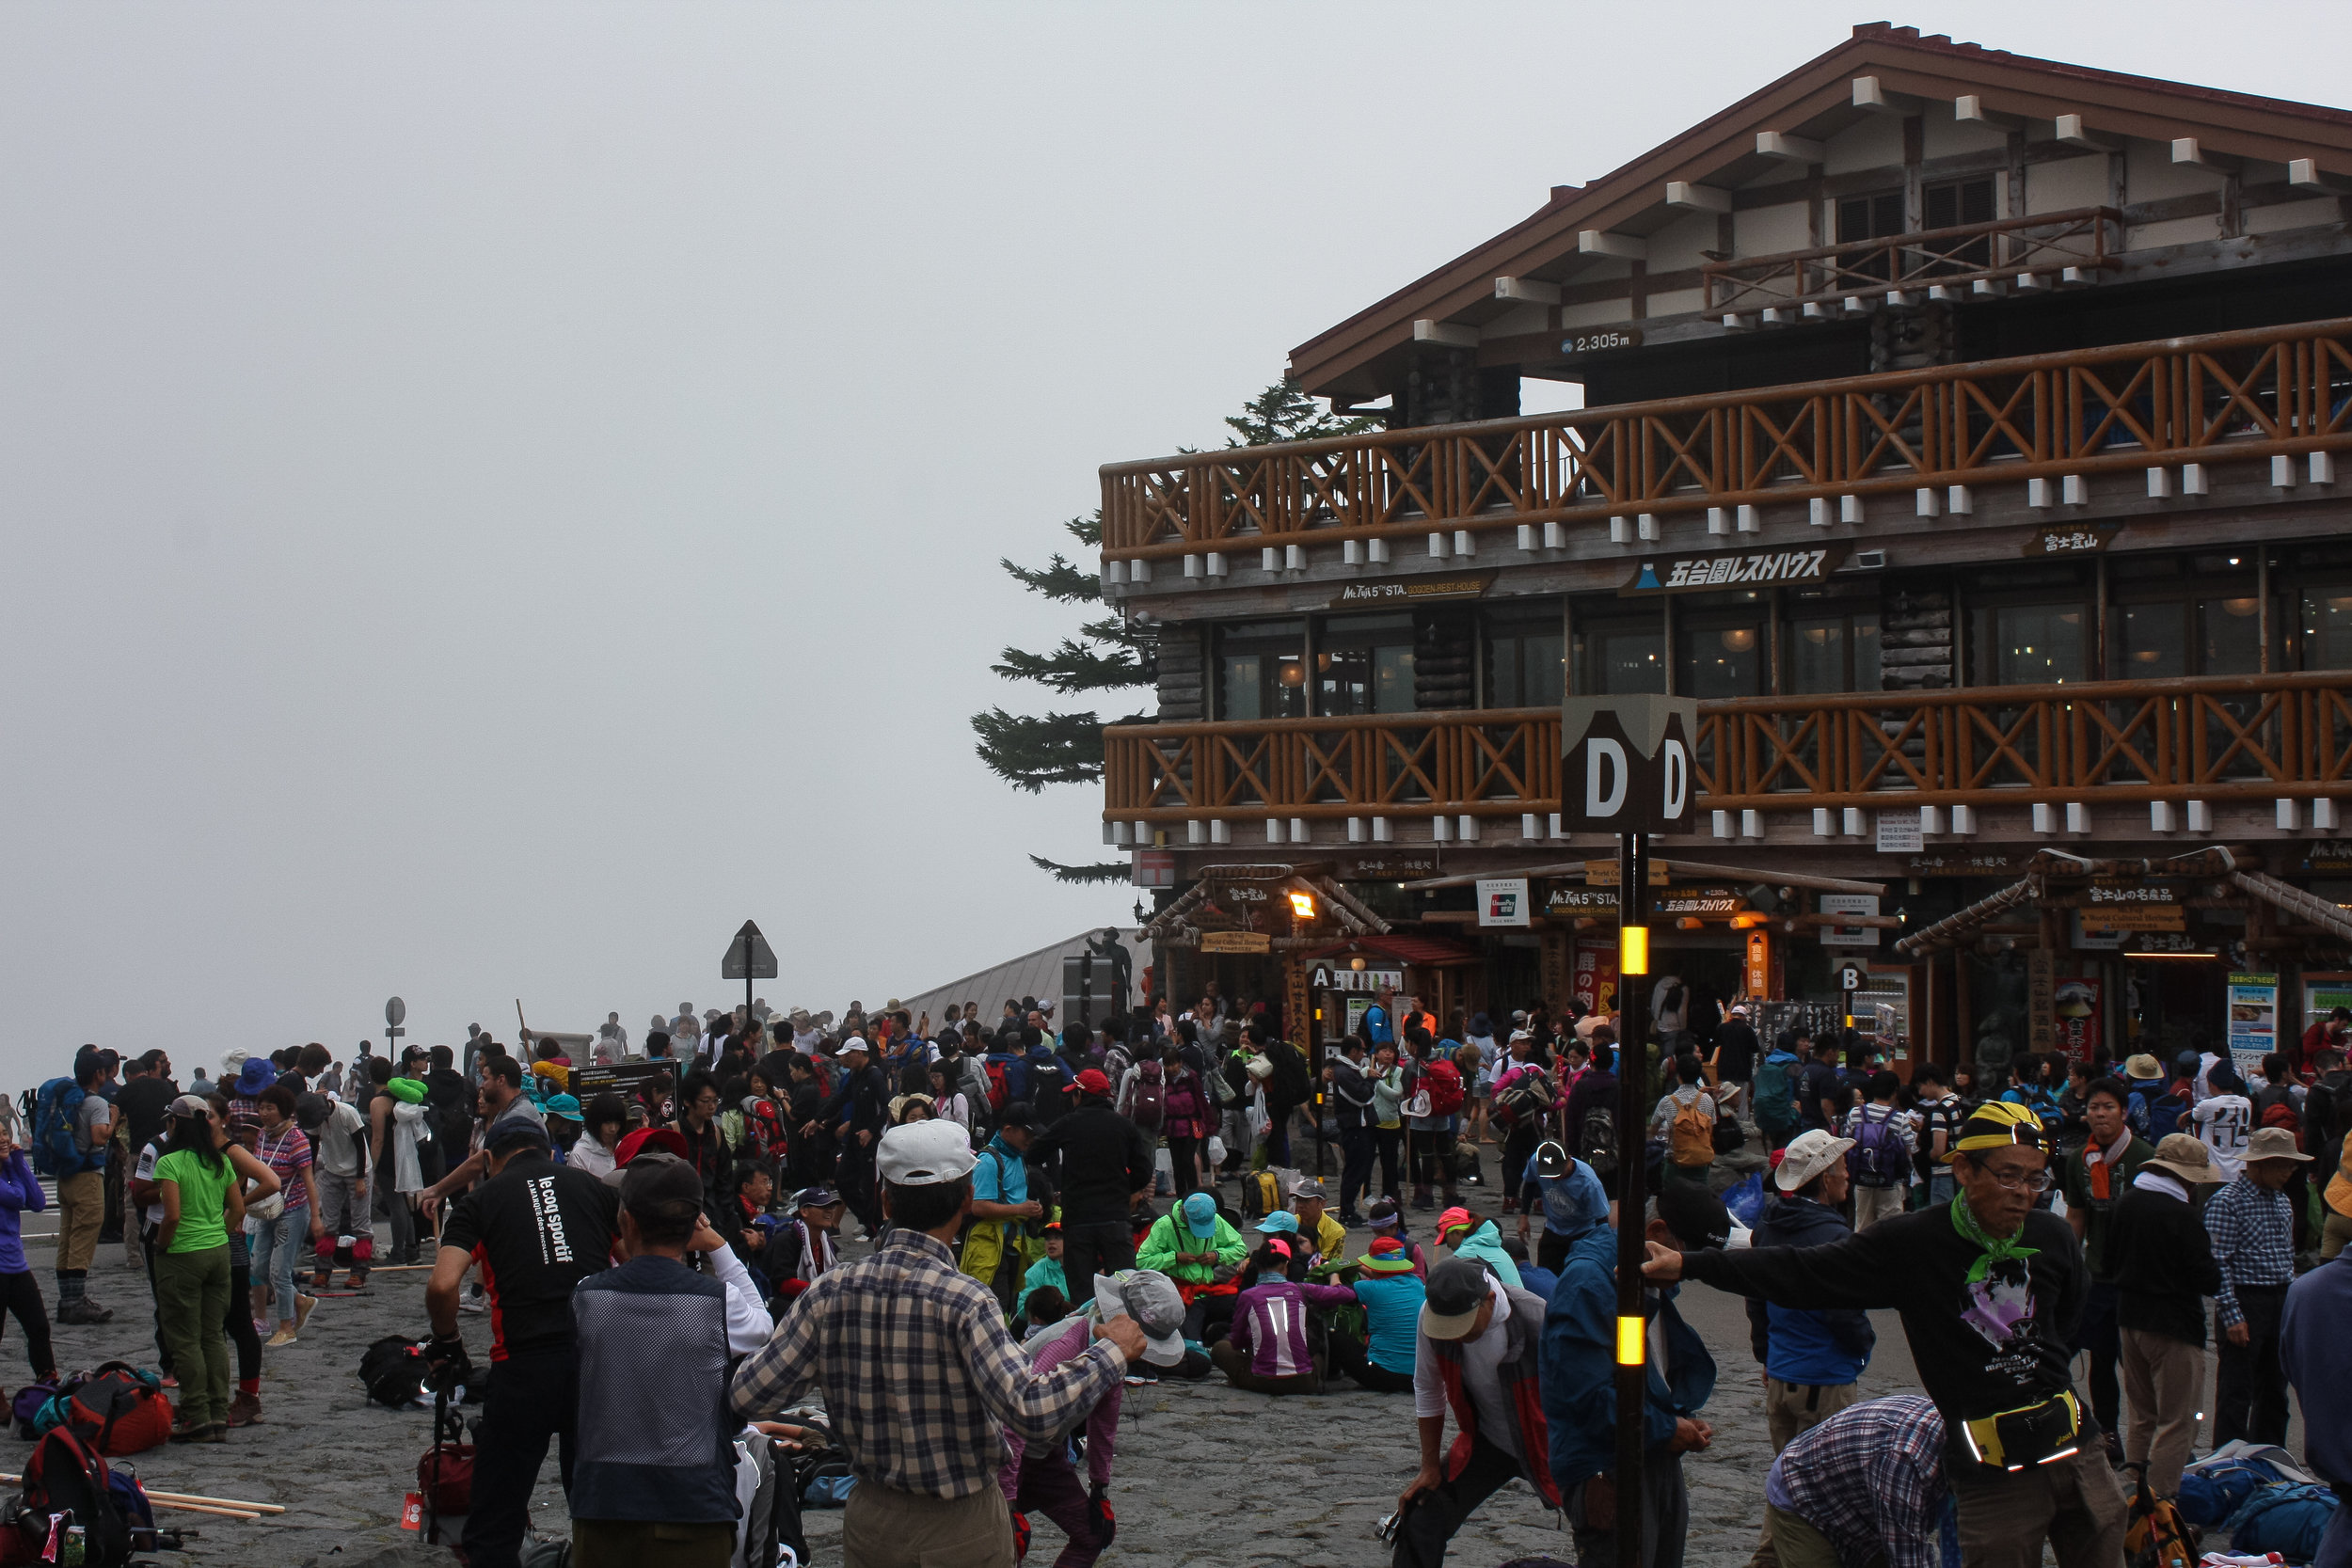 Huge crowds arrive at the Mount Fuji 5th Station ready to clim the mountain.